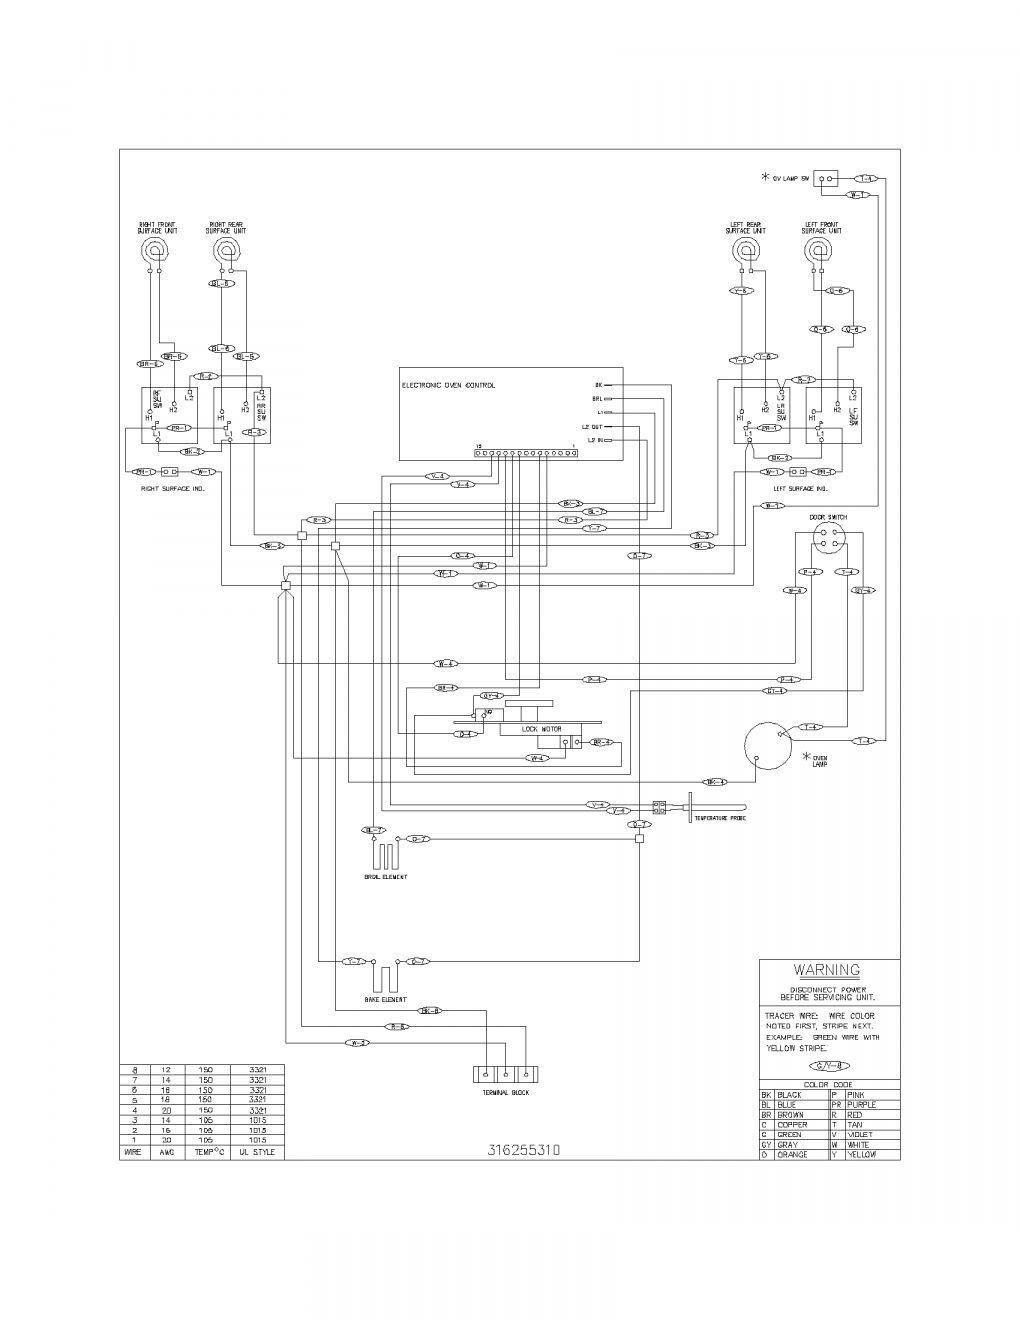 [DIAGRAM_3NM]  17+ Frigidaire Electric Range Wiring Diagramfrigidaire electric range  wiring diagram, frigidaire electric stov… in 2020 | Electric range,  Electrical wiring diagram, Diagram | Wire Stove Schematic Diagram |  | Pinterest